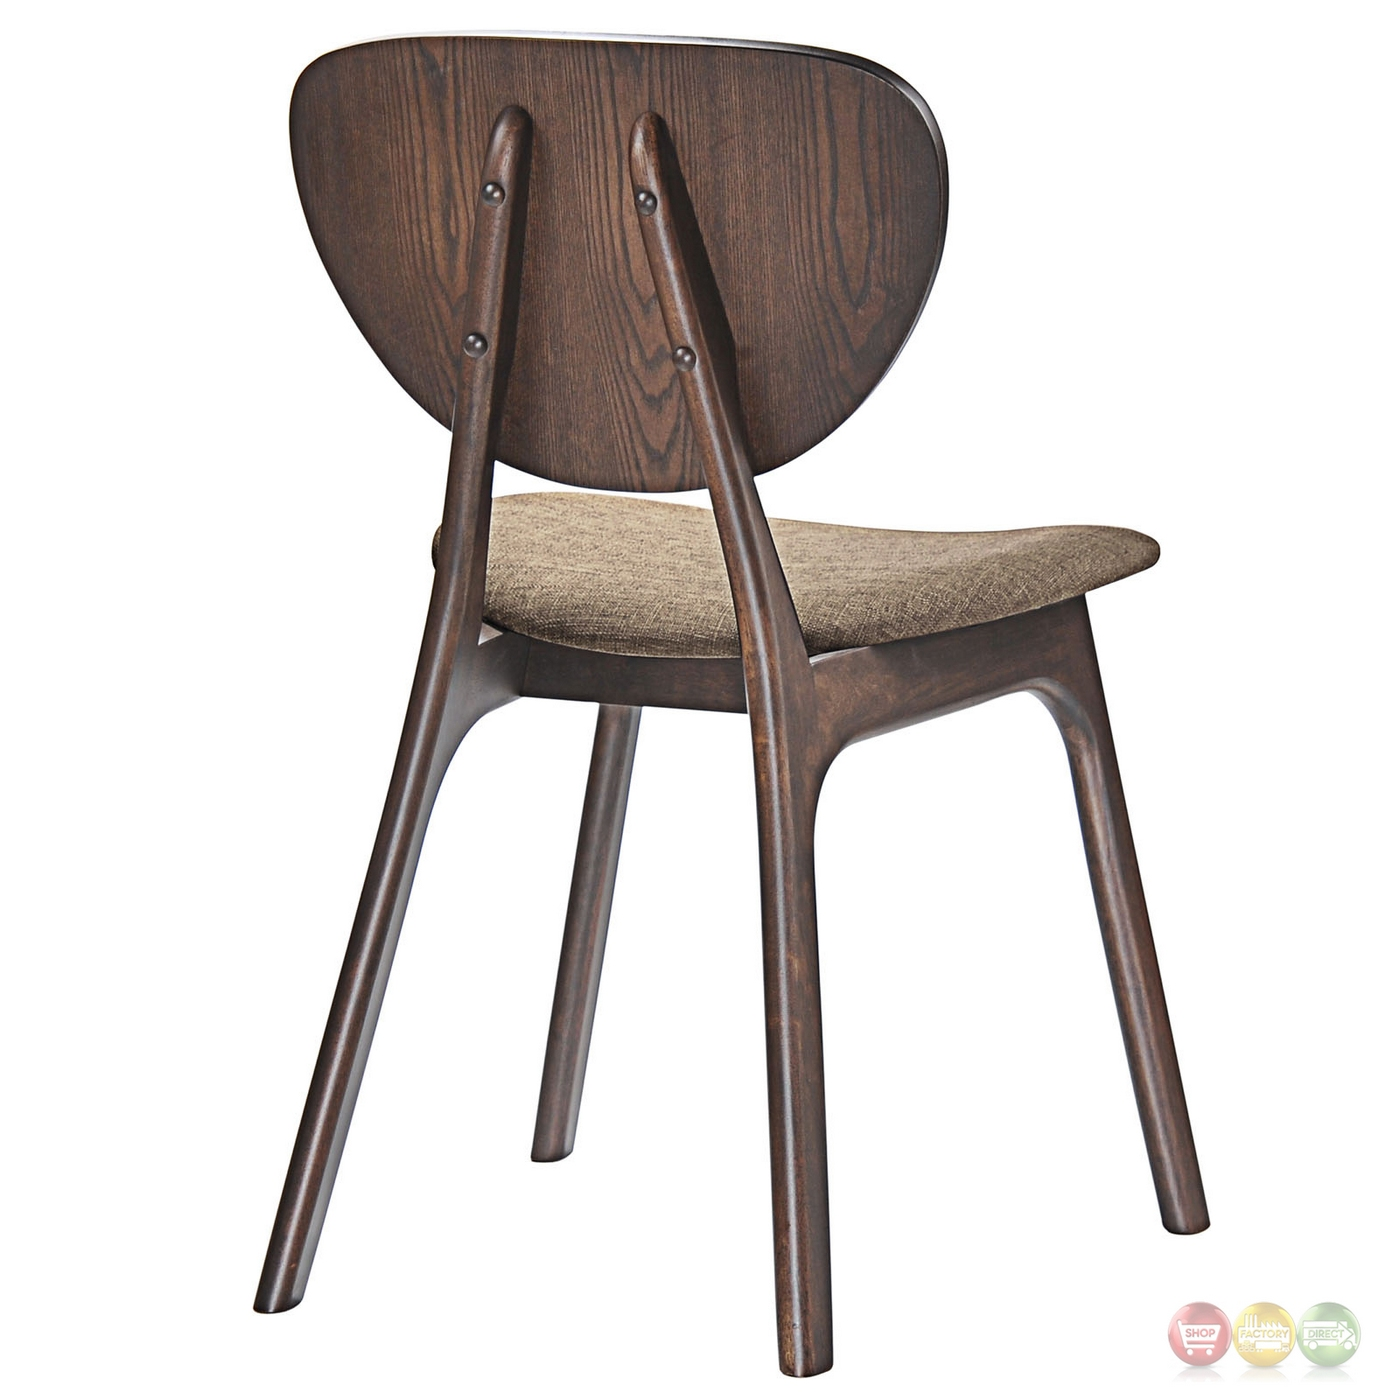 set of 2 dining chairs chromcraft kitchen chair parts murmur vintage modern wooden side